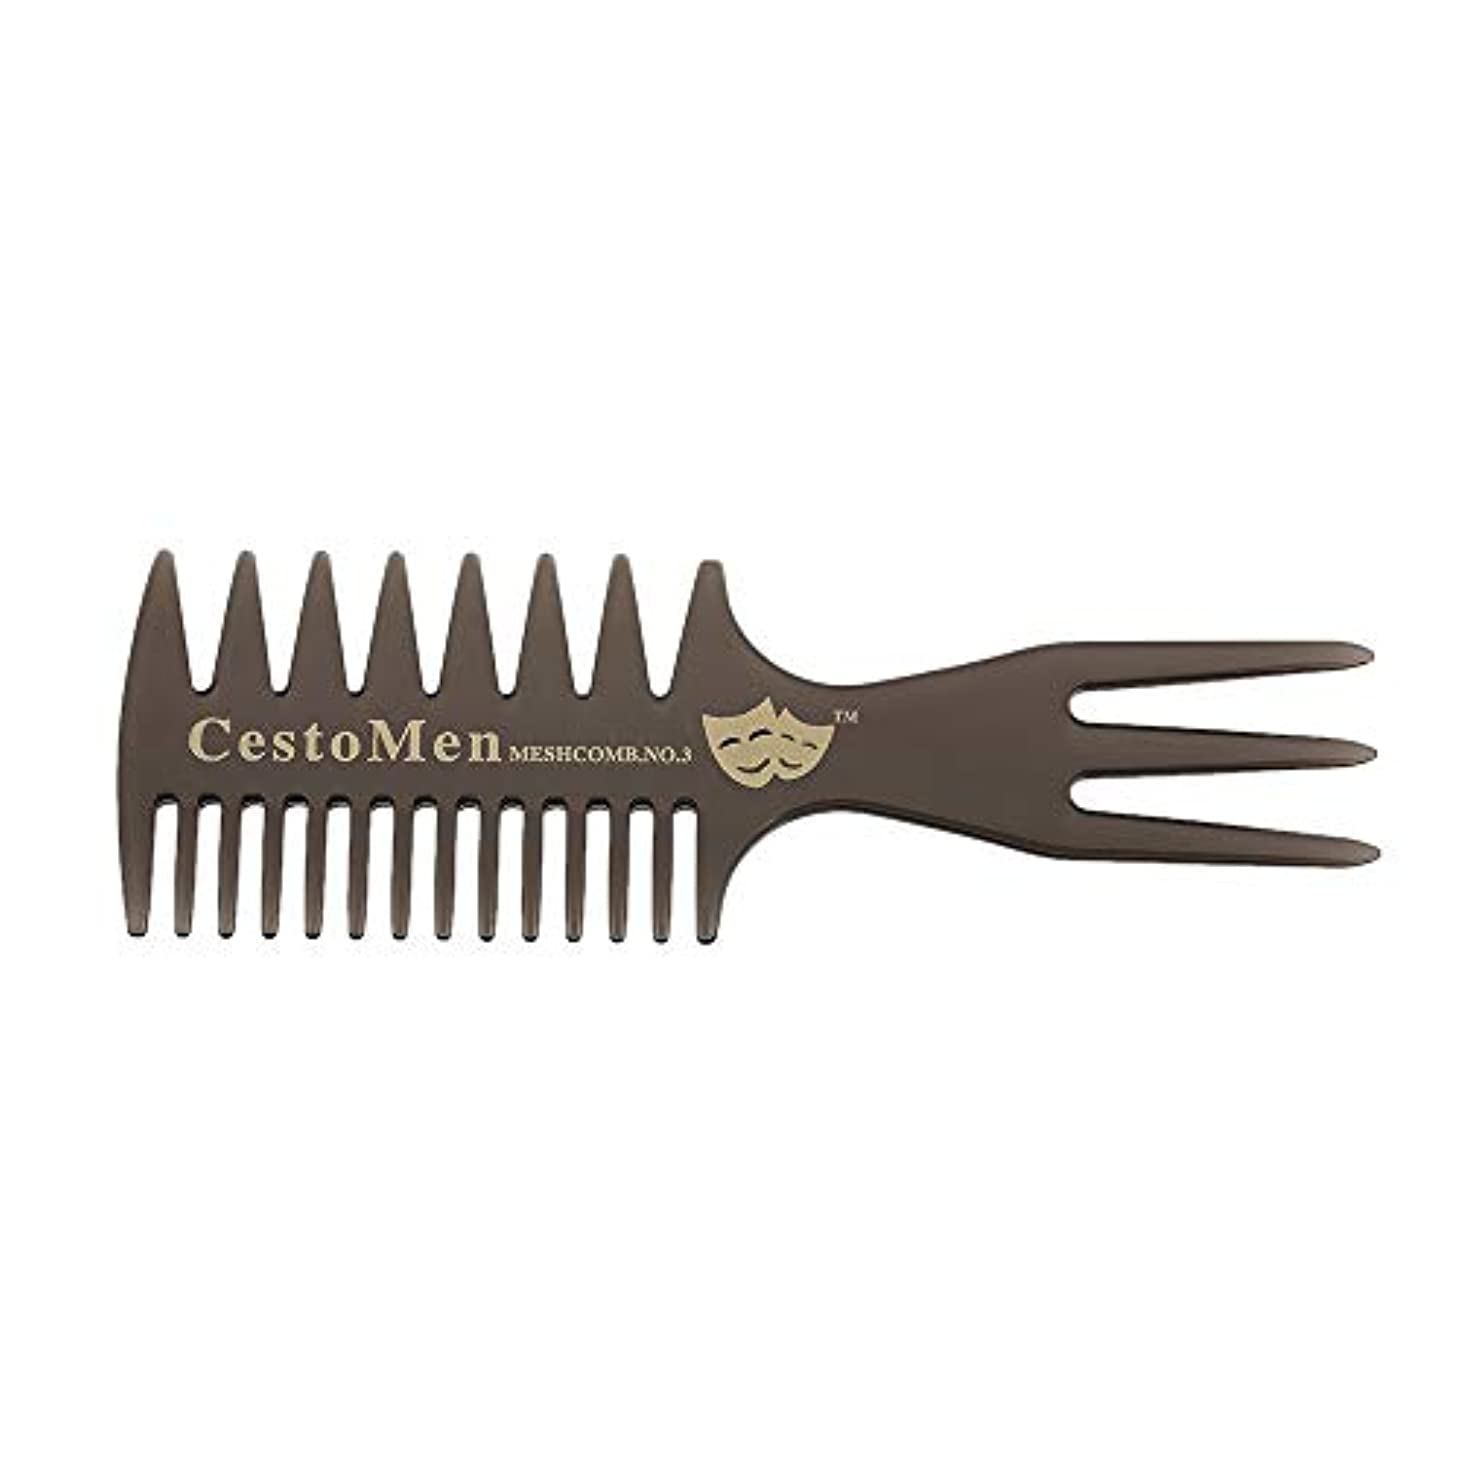 約設定裁判所重量Three-sided Hair Comb Insert Afro Hair Pick Comb Male Wide Tooth Classic Oil Slick Styling Hair Brush For Hair...